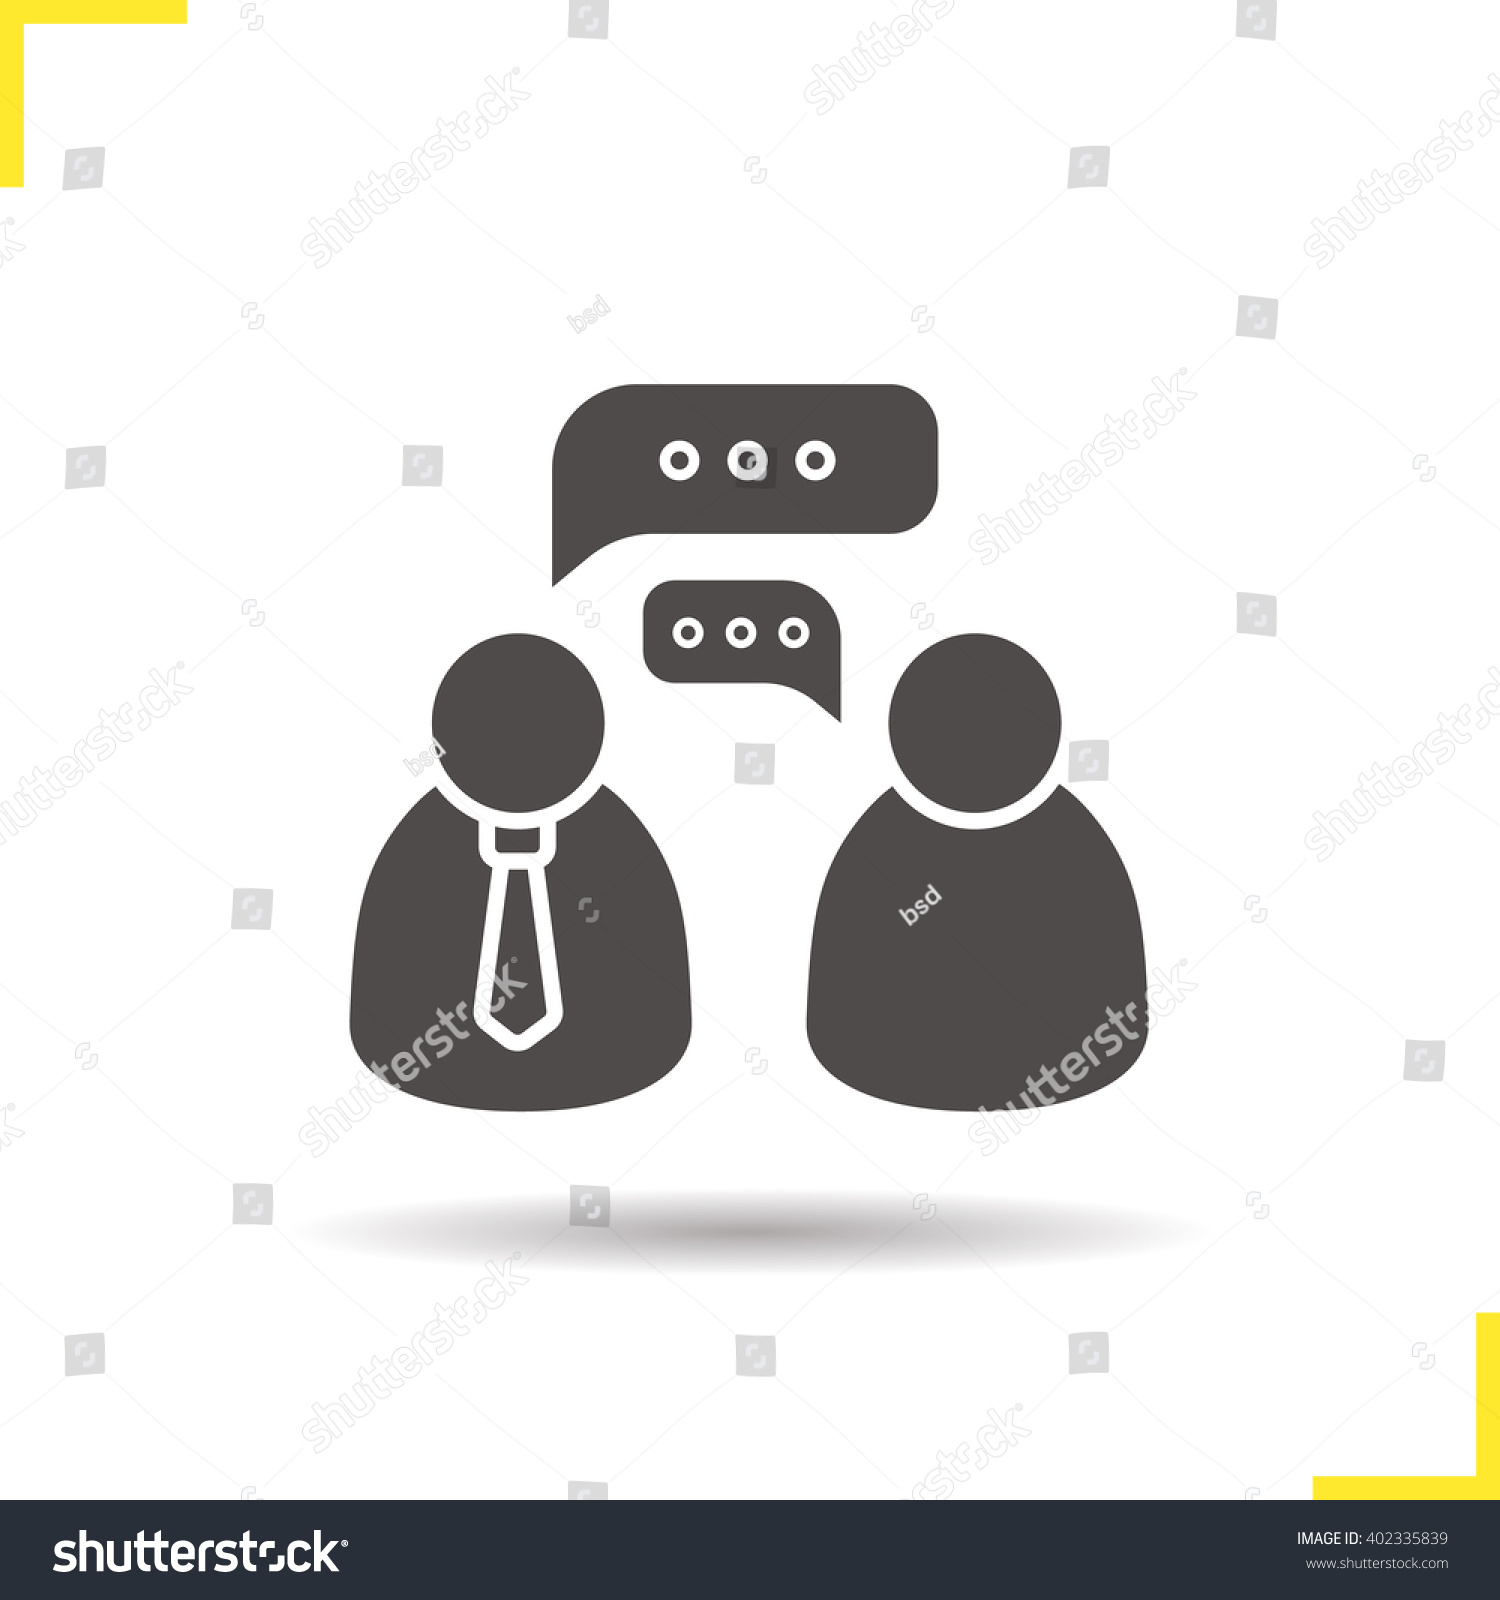 job interview icon drop shadow speakers stock vector  job interview icon drop shadow speakers silhouette symbol business talk two people speaking